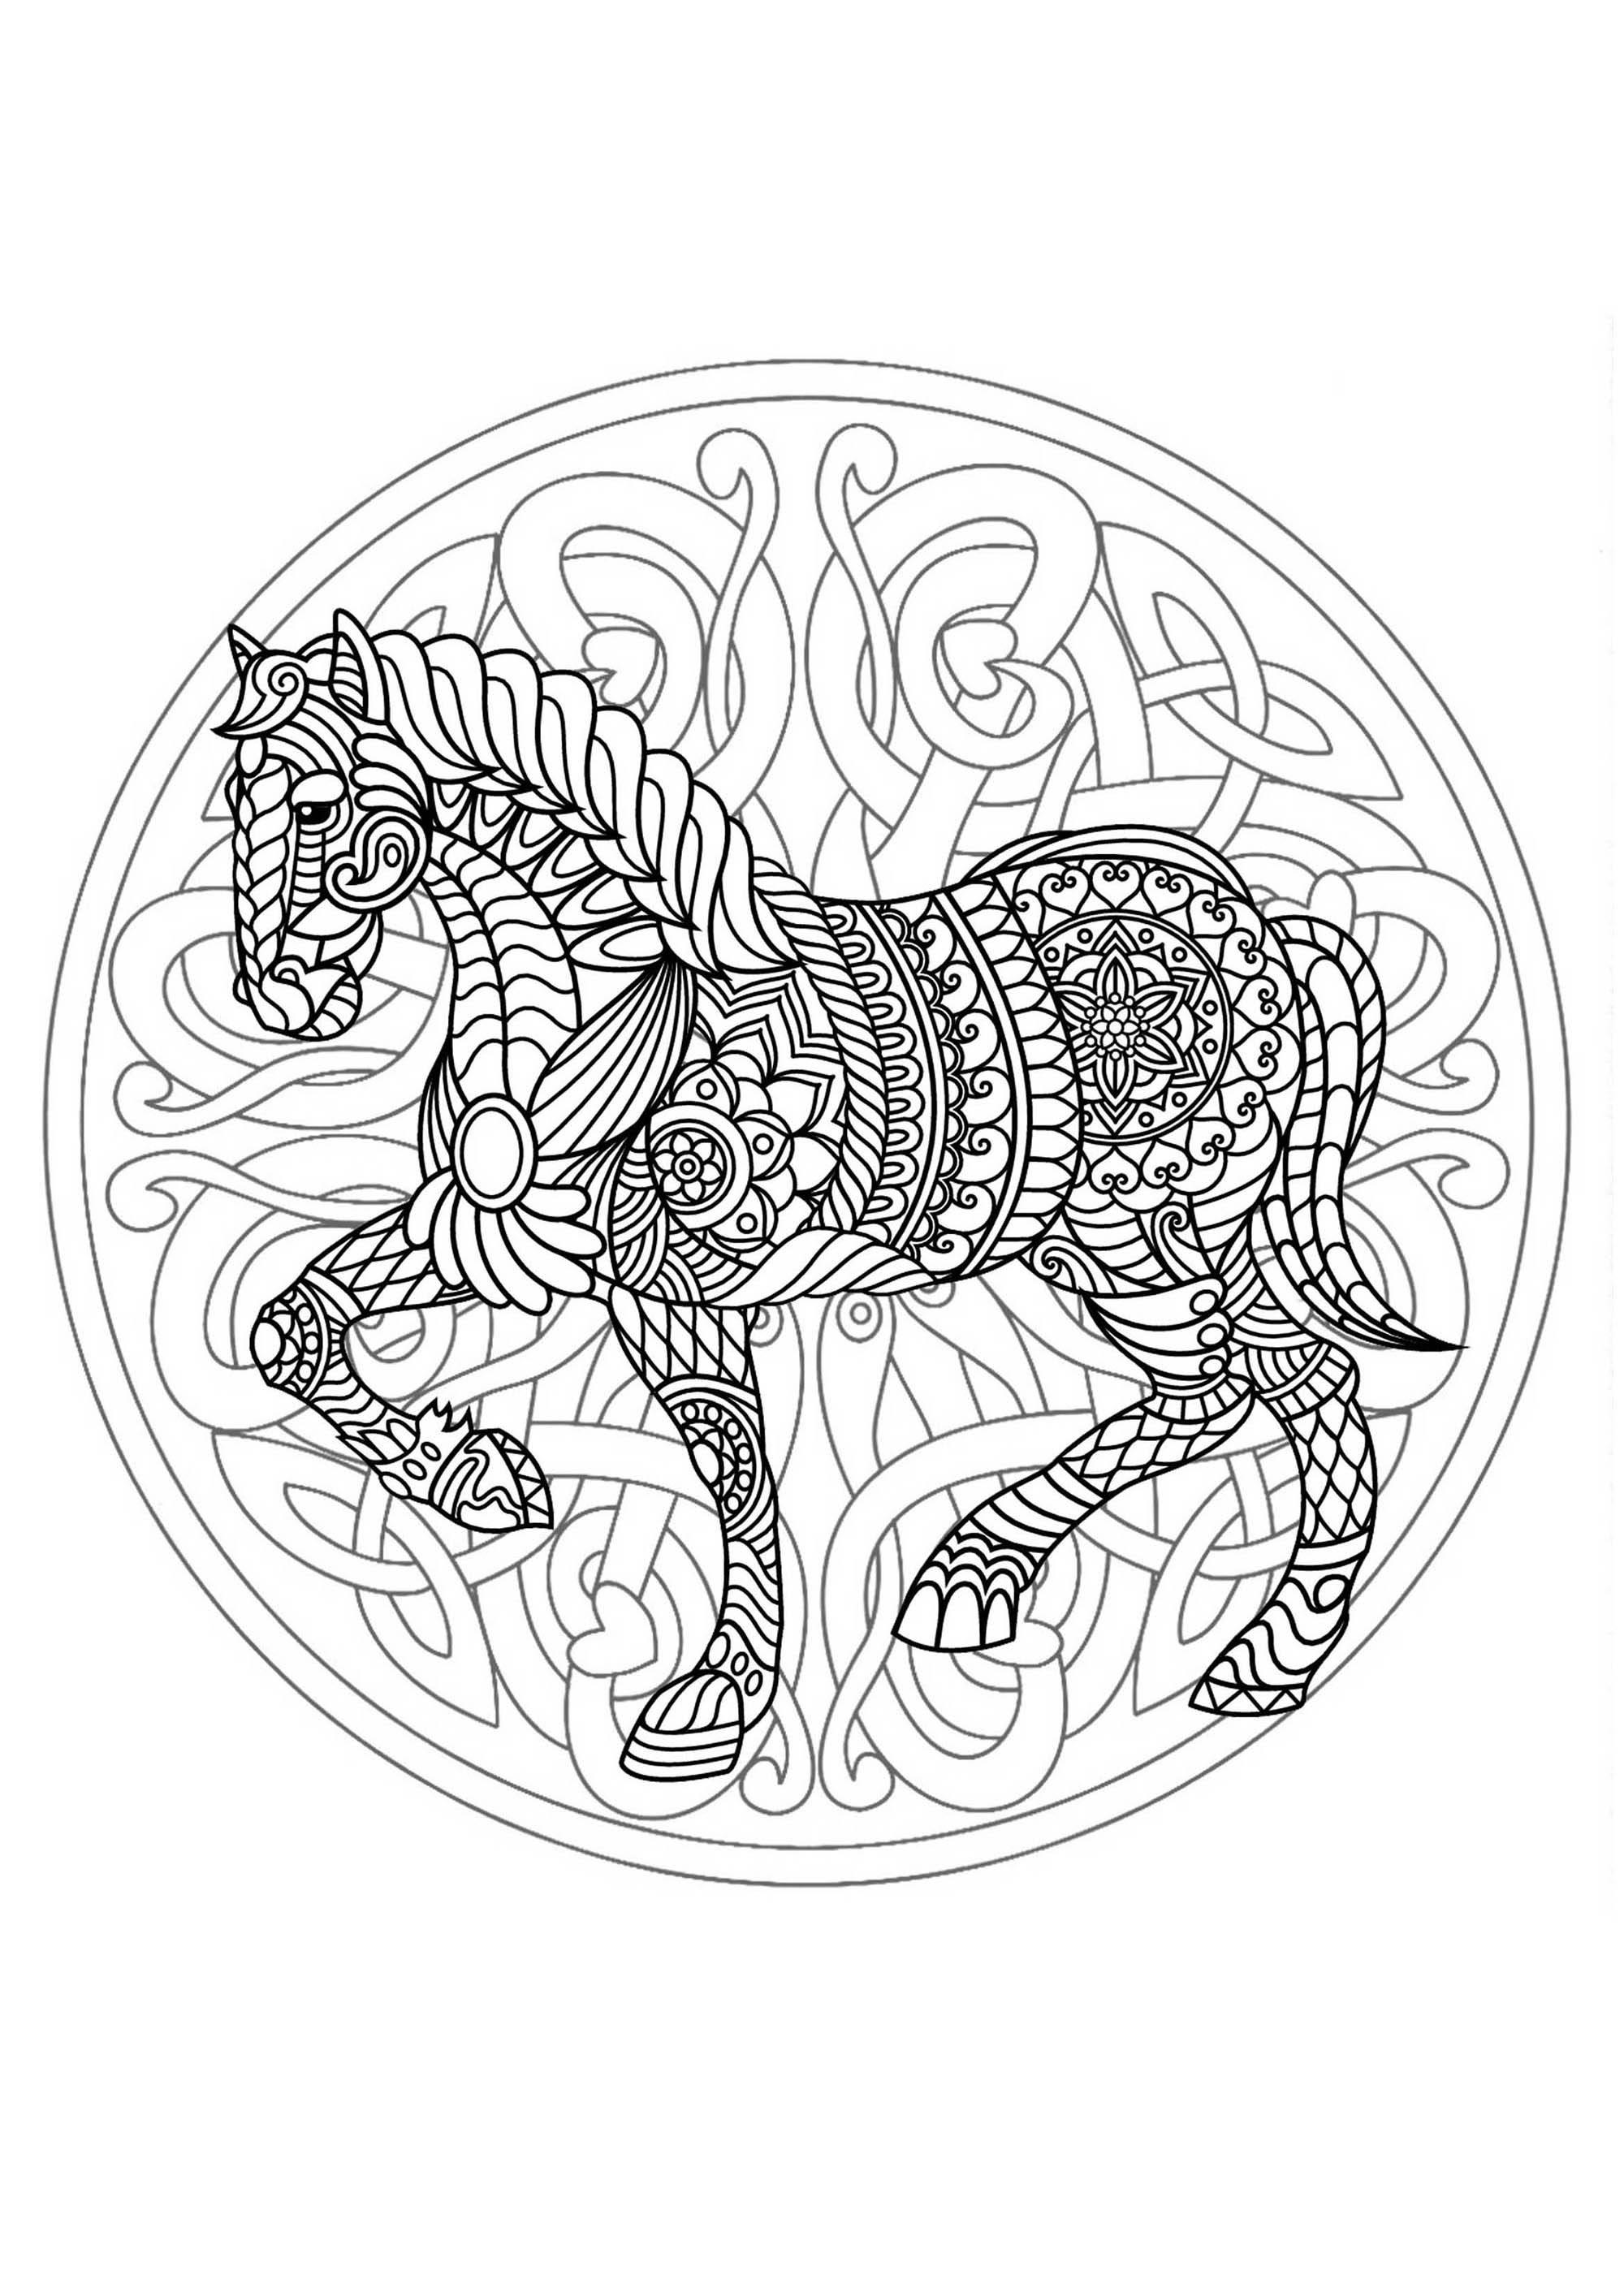 Complex Mandala coloring page with horse 3 Difficult